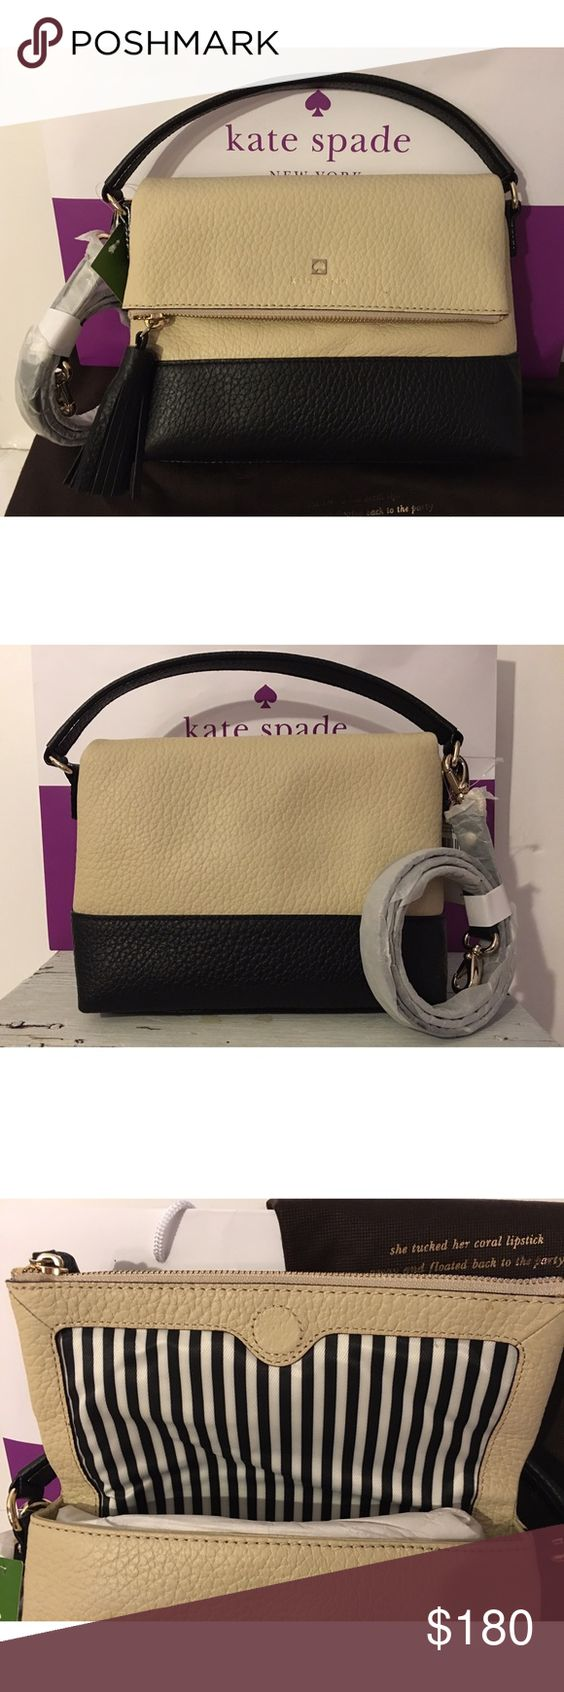 """KATE SPADE MINI CARMEN SOUTHPORT AVE. HANDBAG-NWT Kate Spade♠️mini Carmen Southport Ave handbag buttermilk and black. New with tags attached. Comes with shoulder strap that is detachable.                                                              Soft black pebbled leather Top handle with 4"""" drop. Additional removable strap with 18""""-22"""" 14 karat gold plated hardware Front flap hidden magnetic snap closure Signature stripe lining  Interior two slip and one zip pockets 11""""L x 8""""H x 3 1/2"""" W…"""